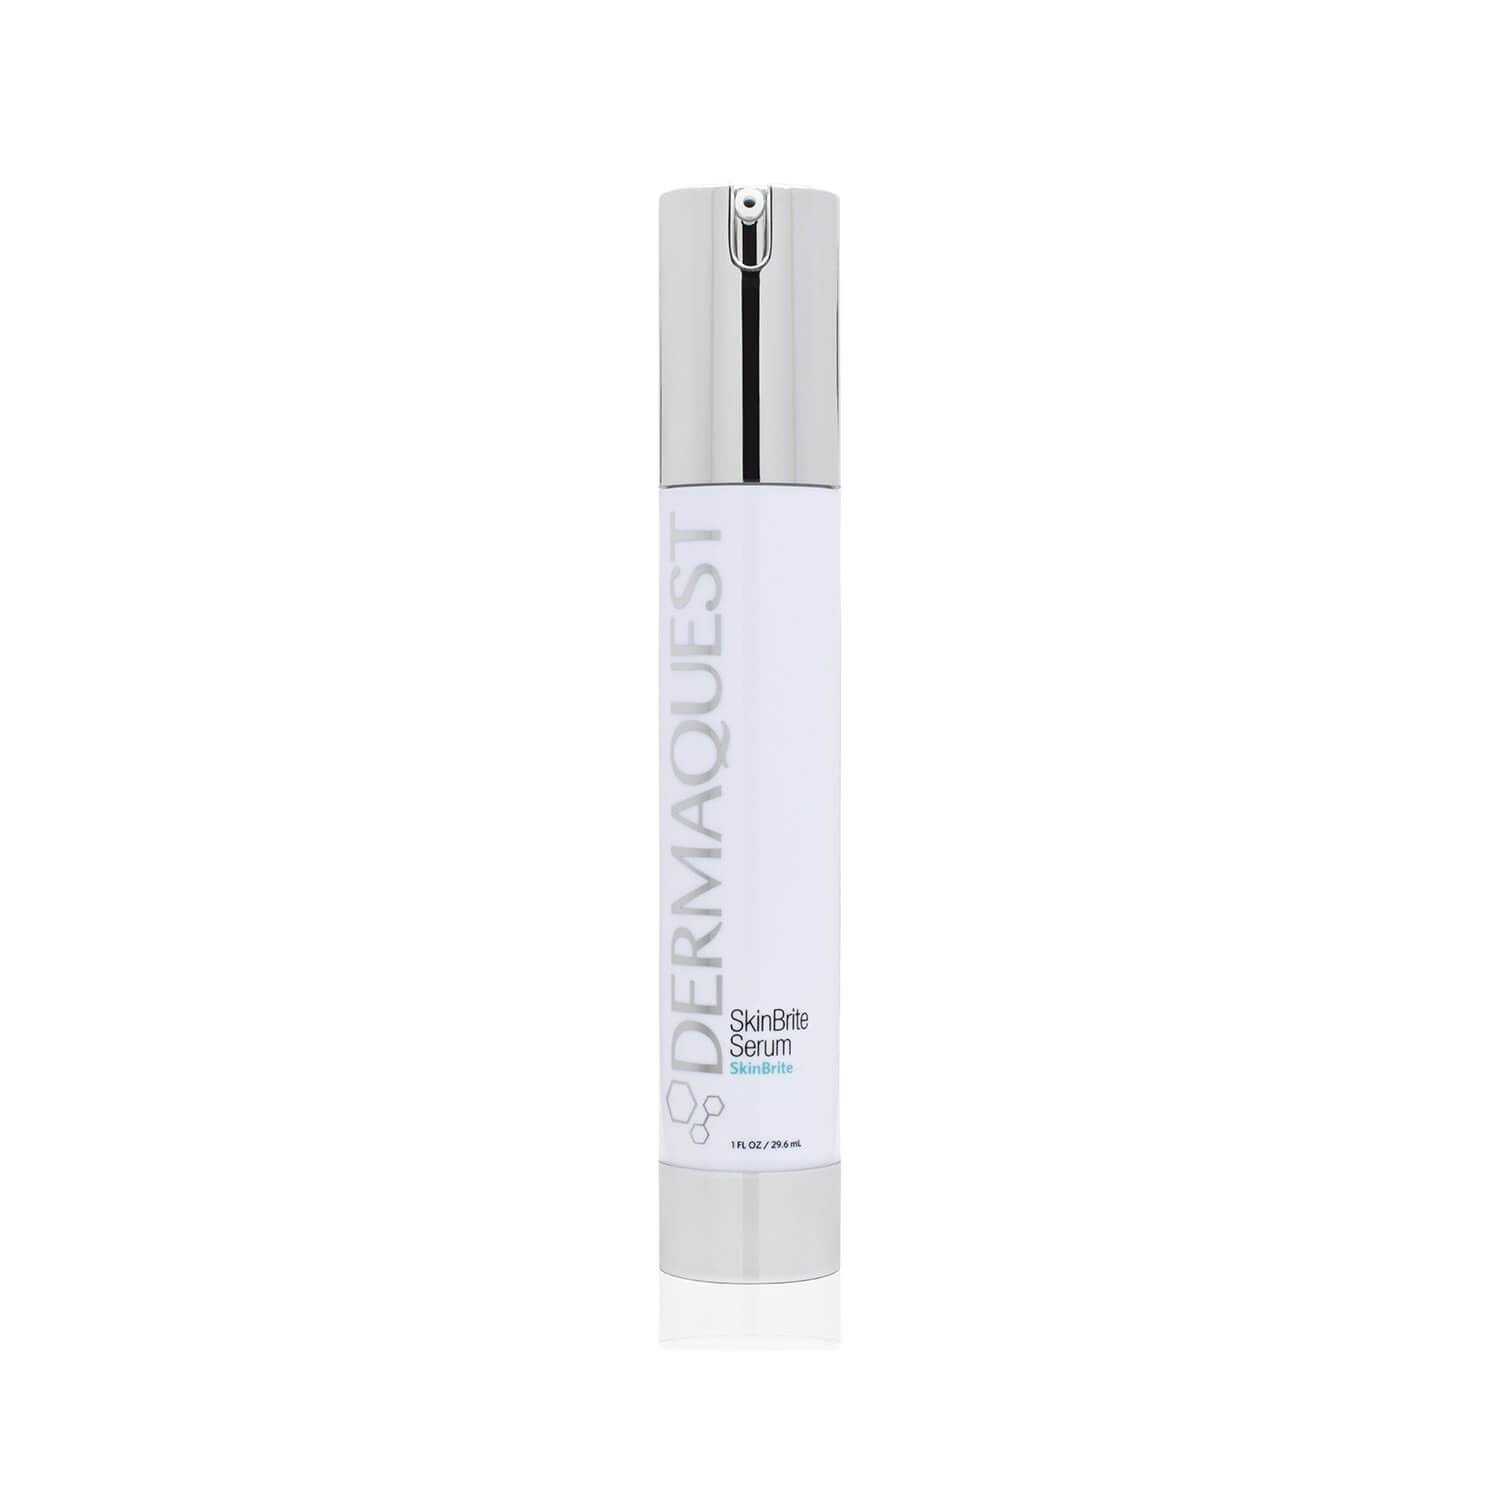 dermaquest-skin-therapy-skinbrite-serum